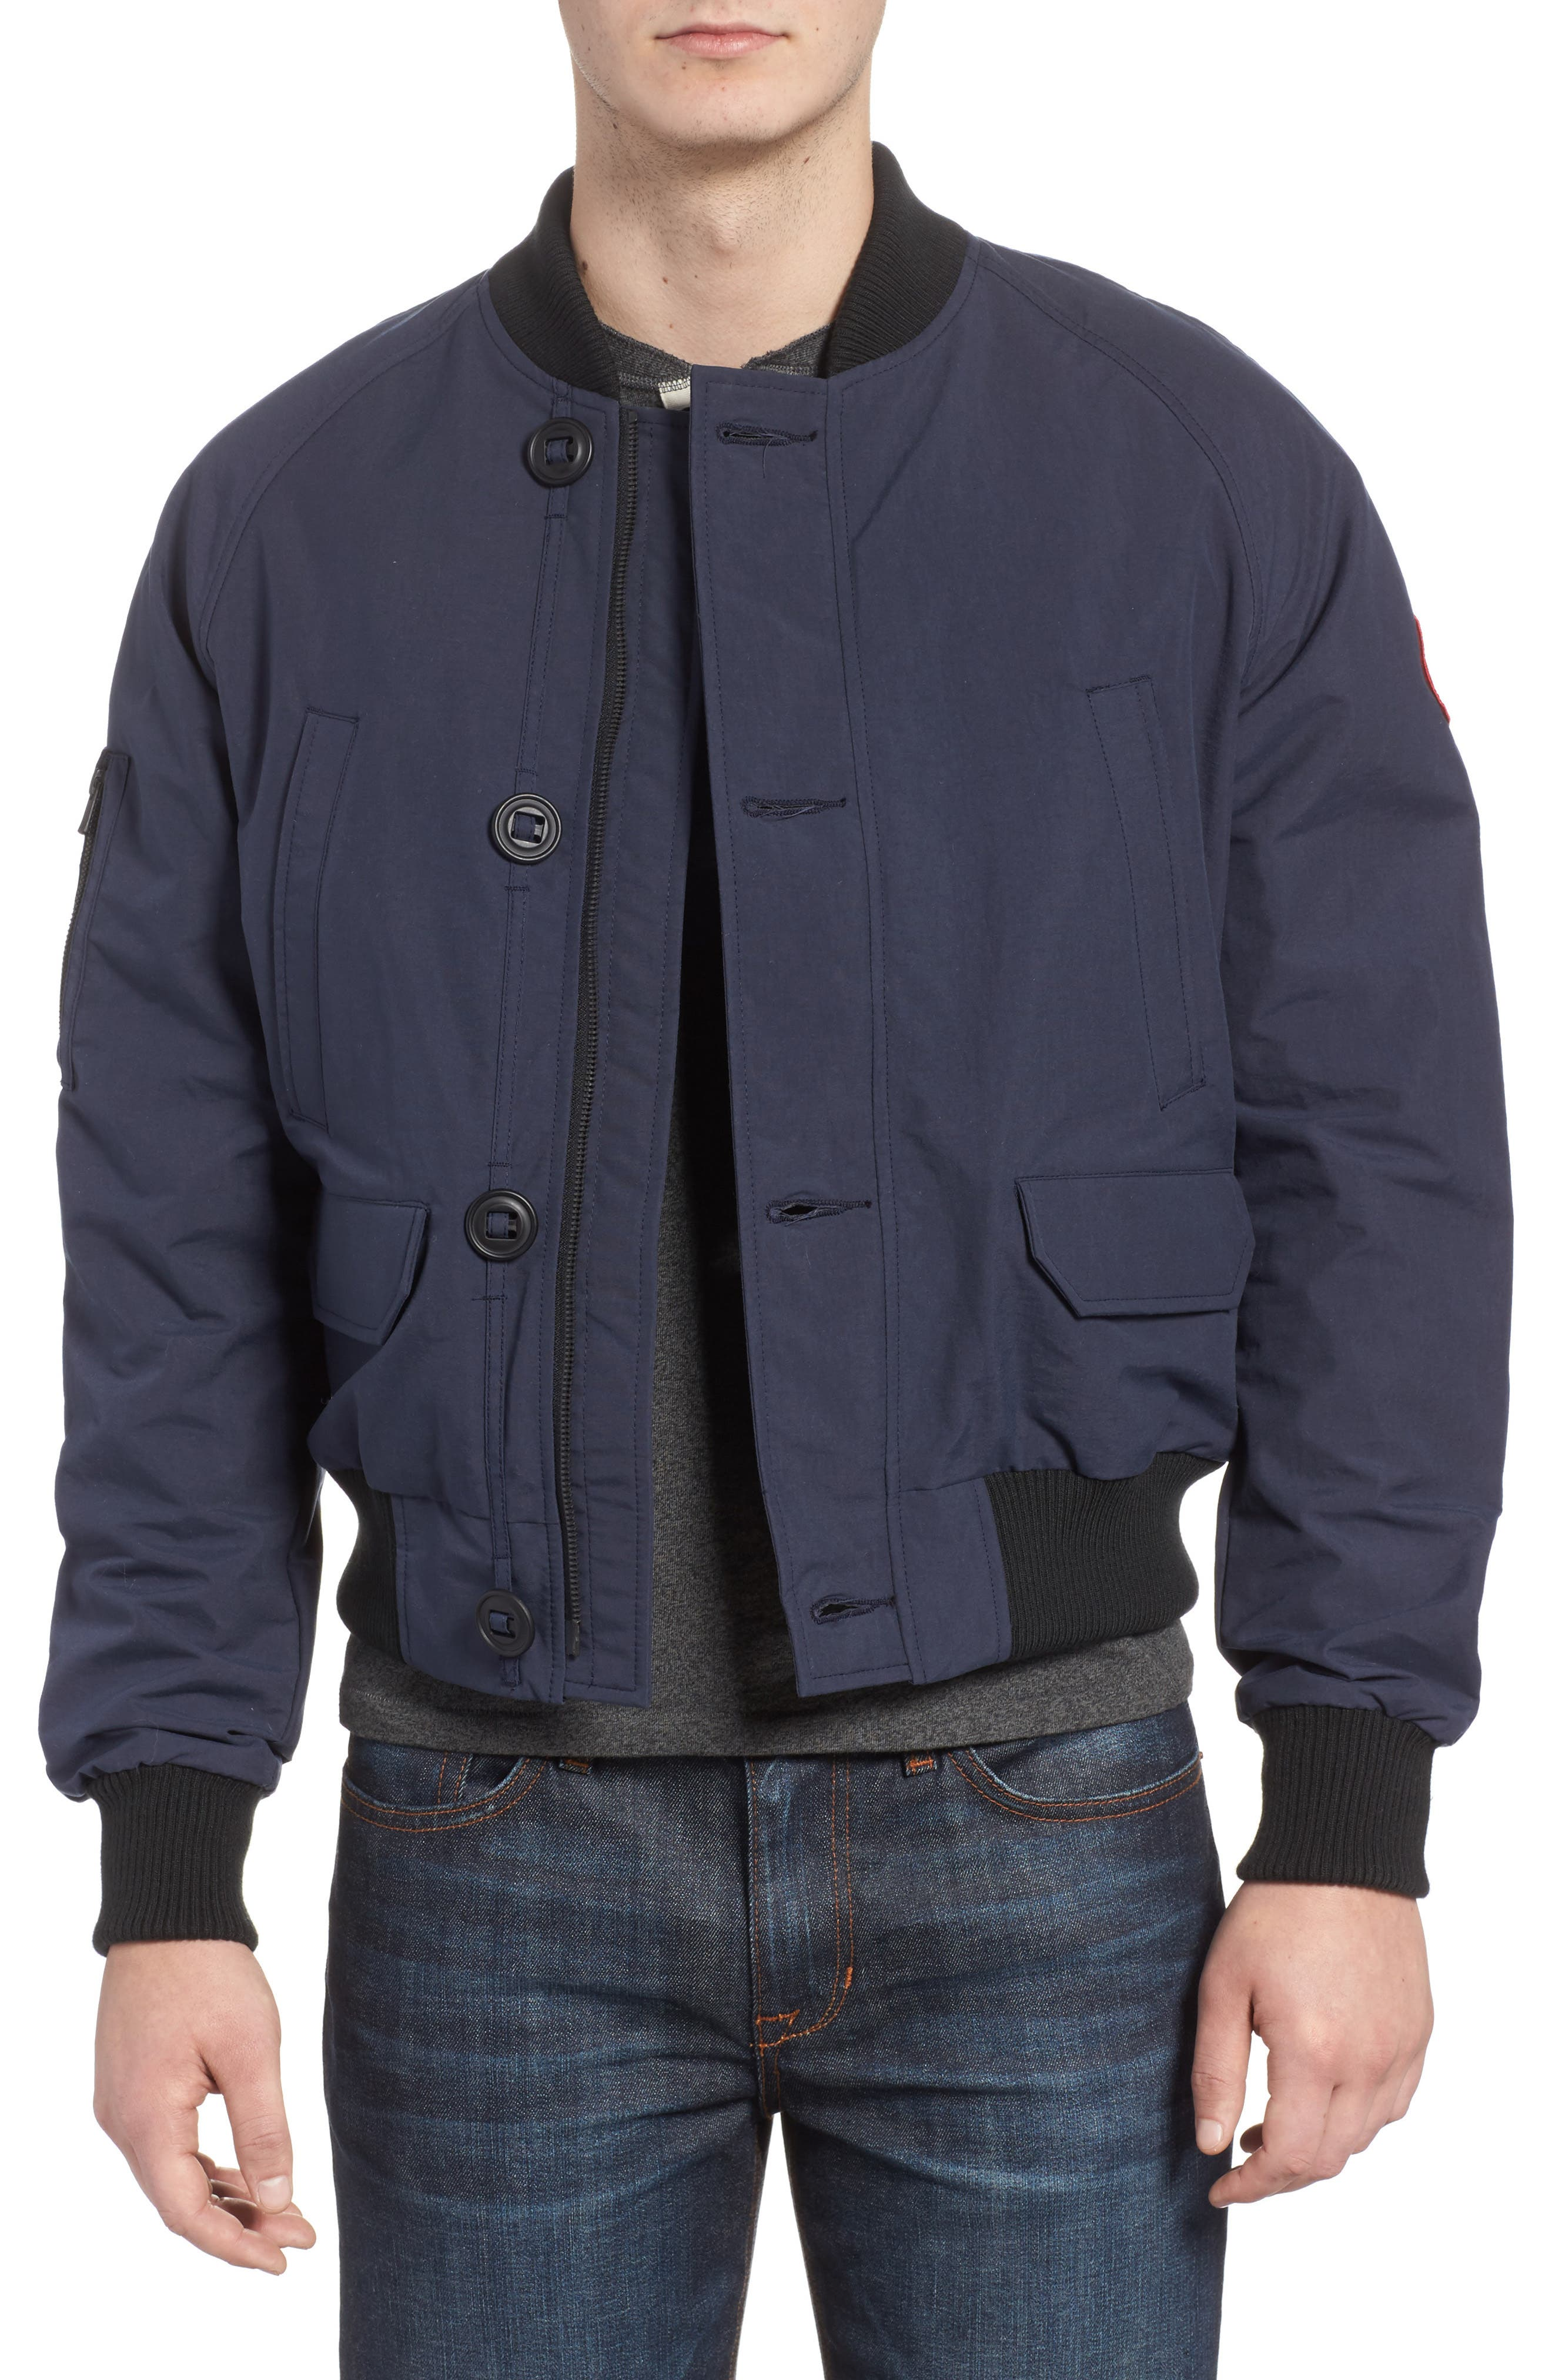 Faber Slim Fit Bomber Jacket,                             Main thumbnail 1, color,                             400